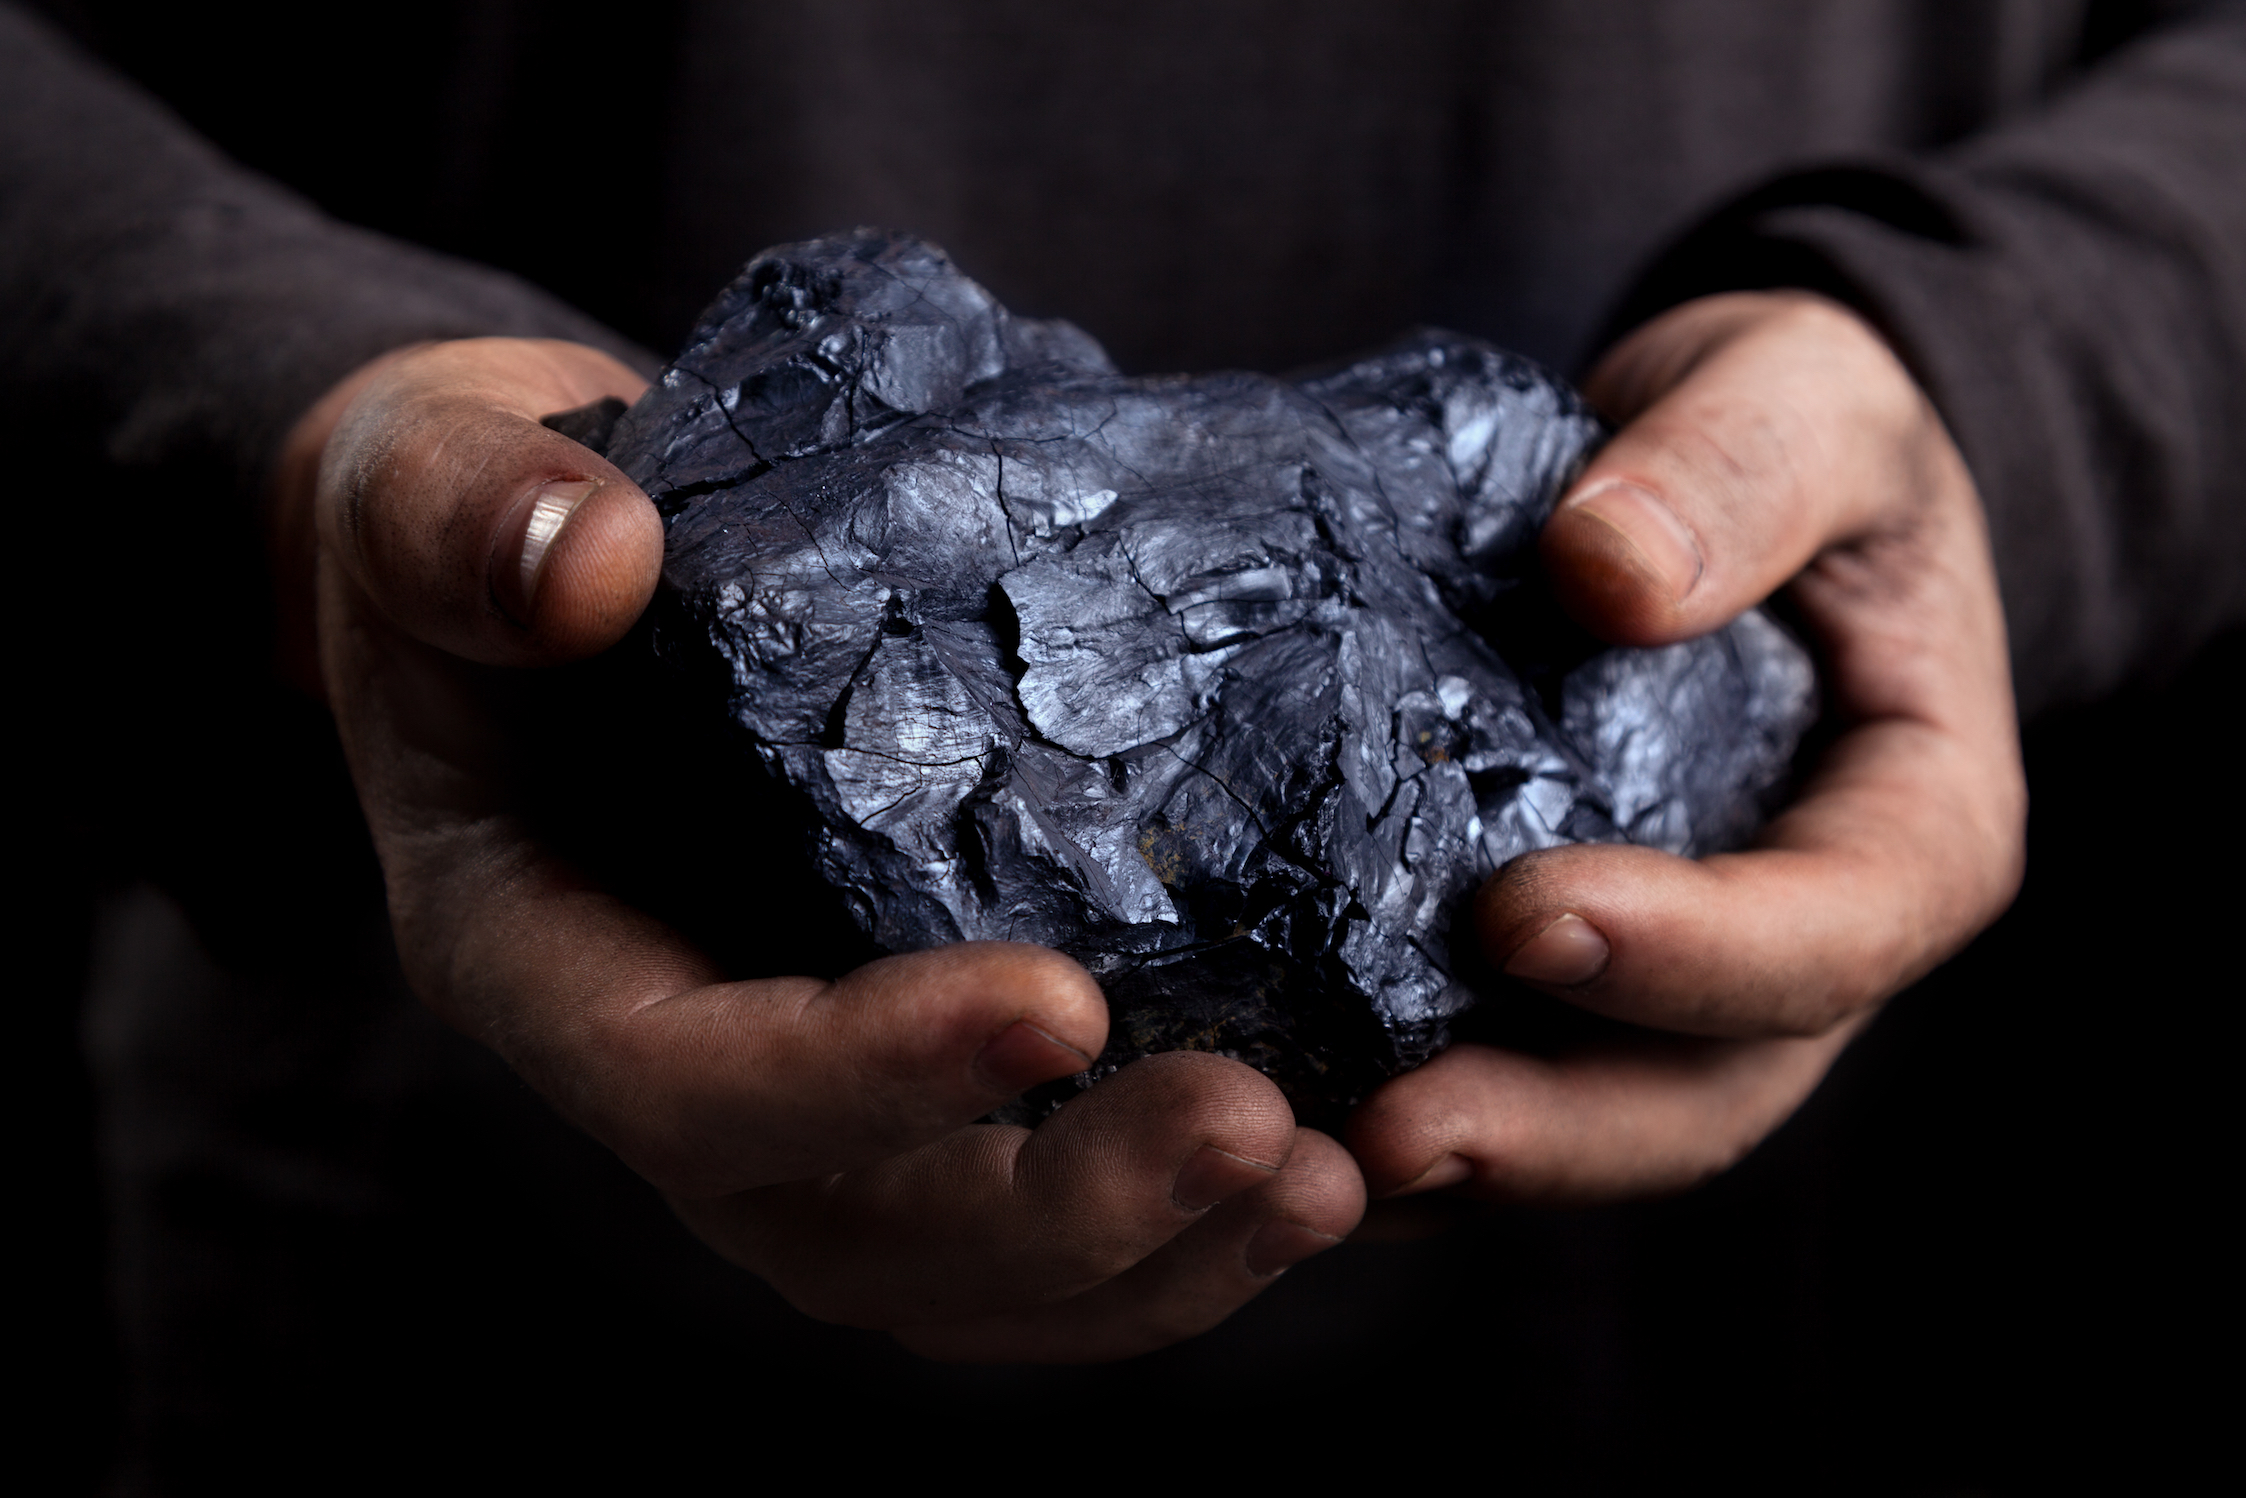 B.H.P. Billiton has released a report announcing its plans to withdraw from the World Coal Association (WCA).